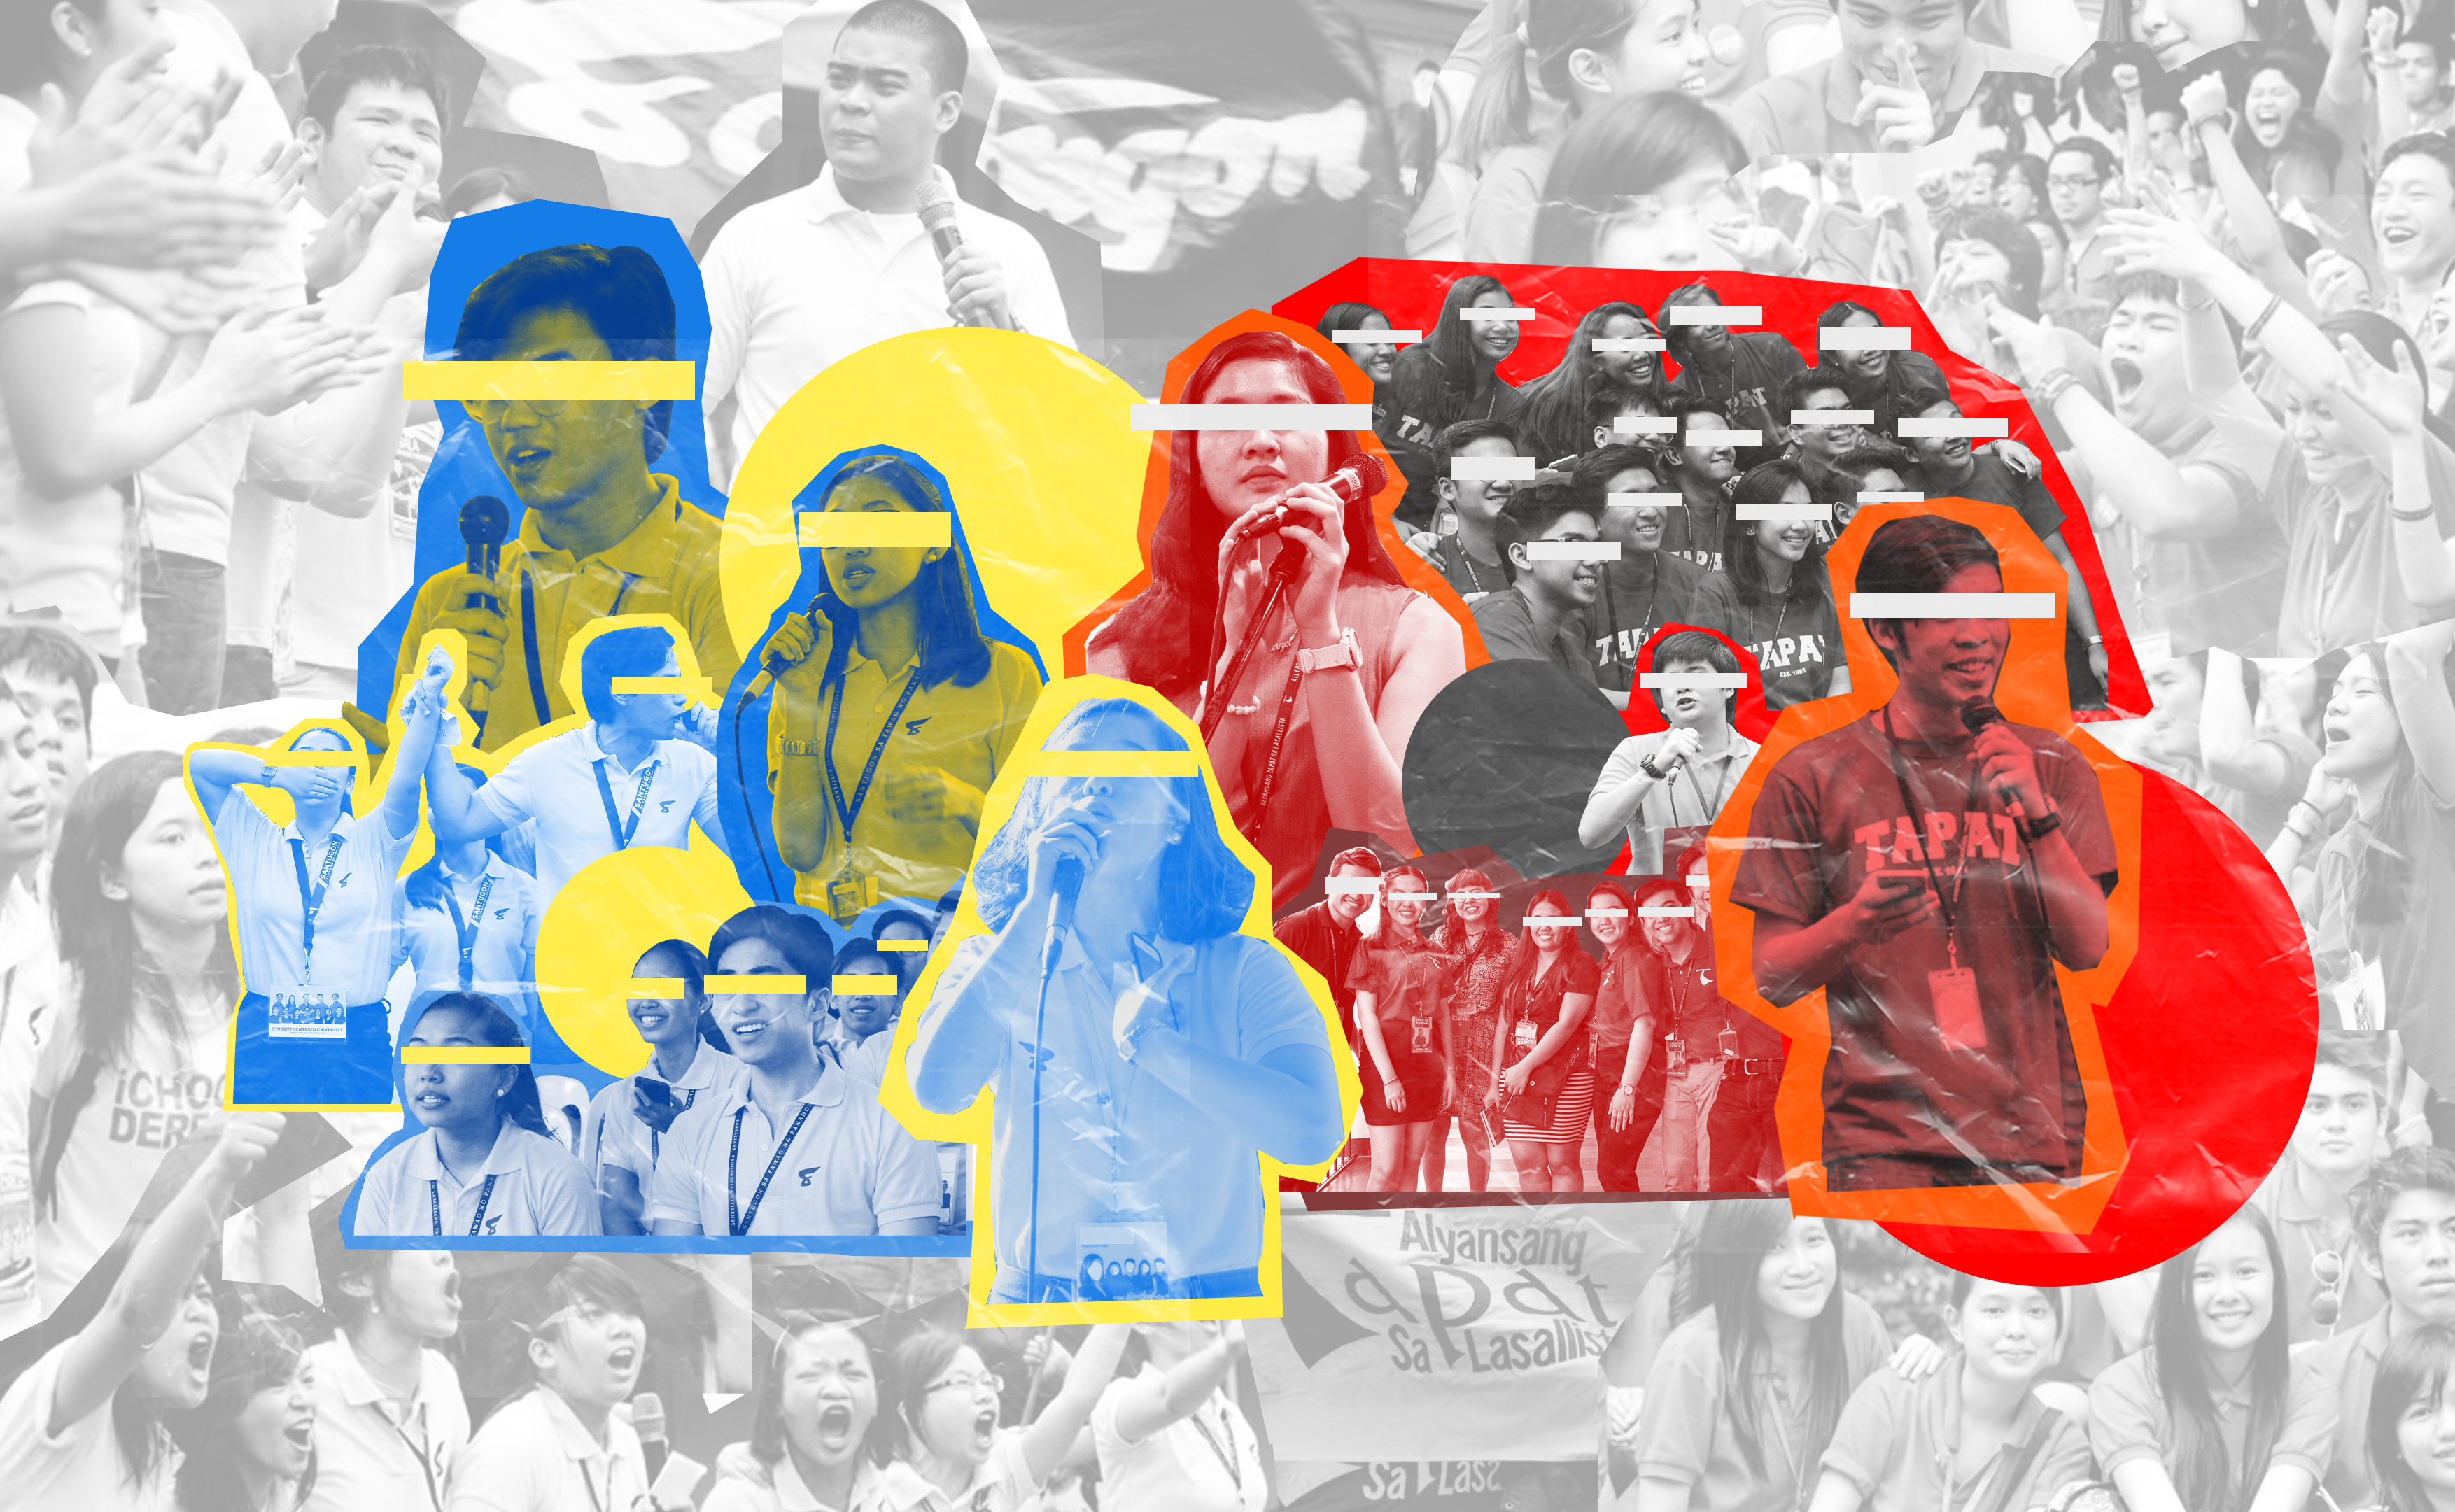 Drawing the line: What sets Tapat and Santugon apart?